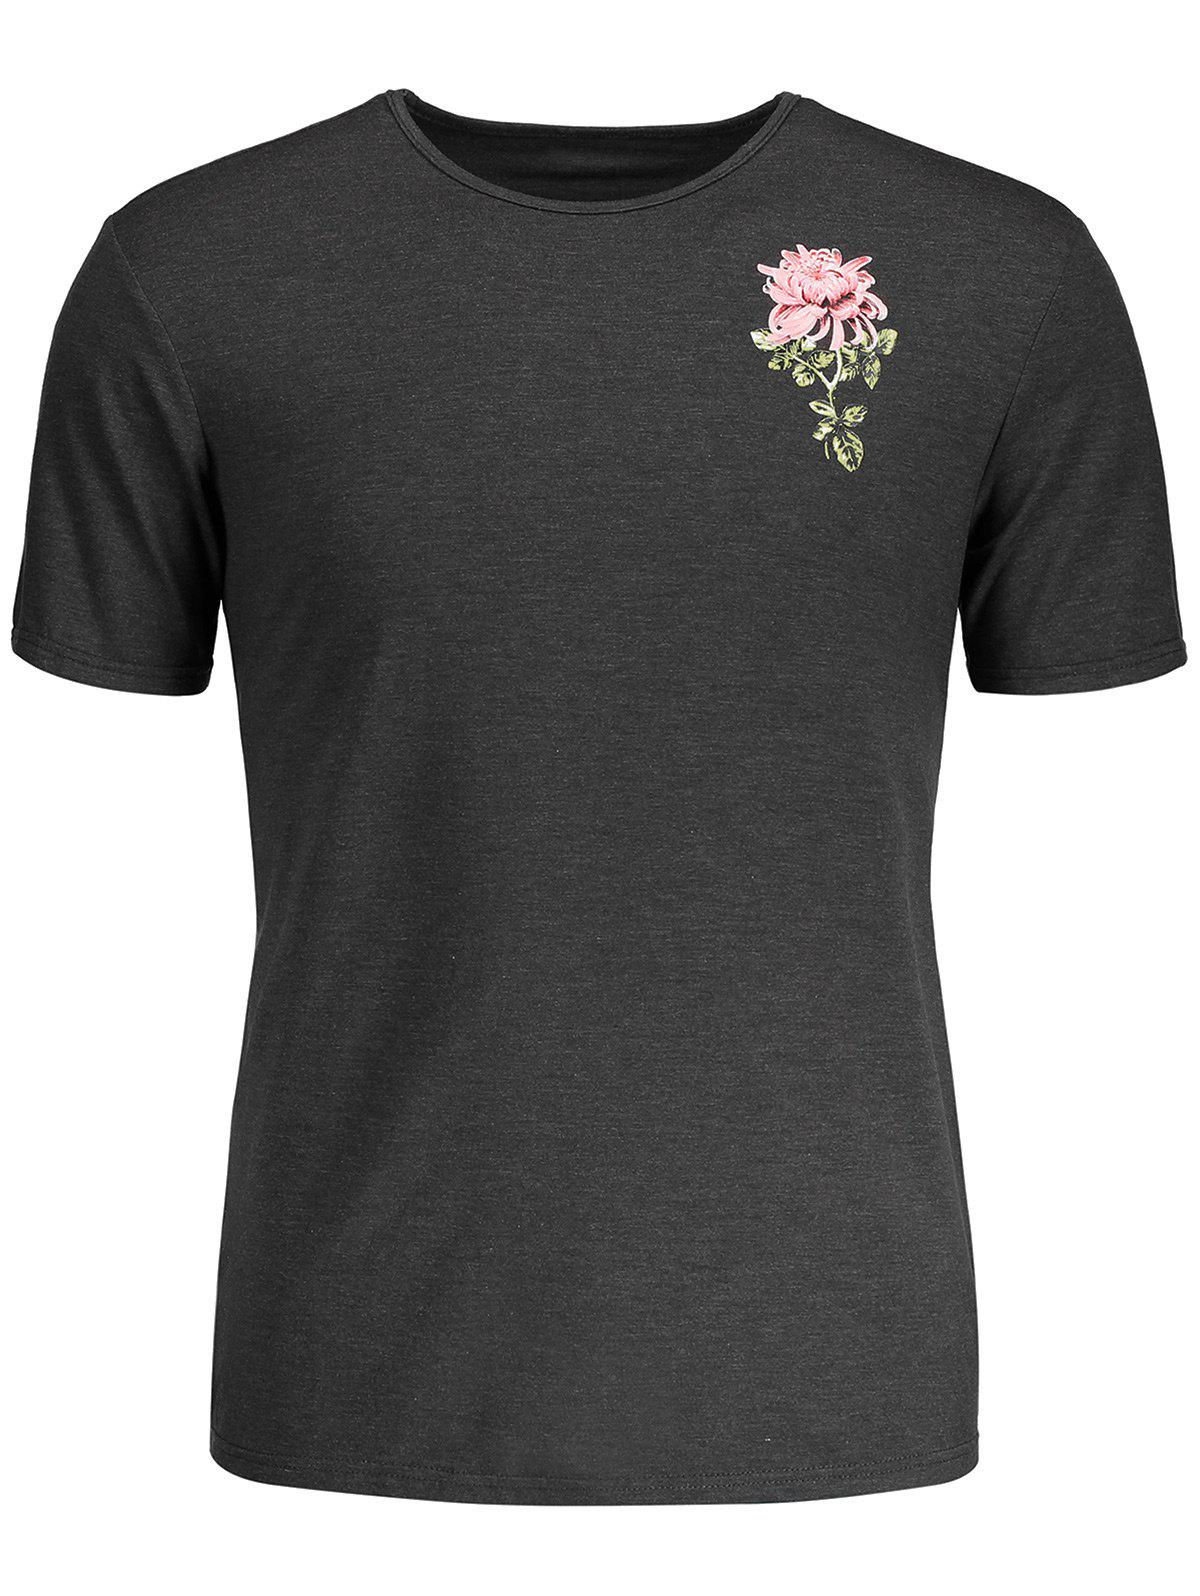 Tropical Flower Print T-shirt - GRAY L